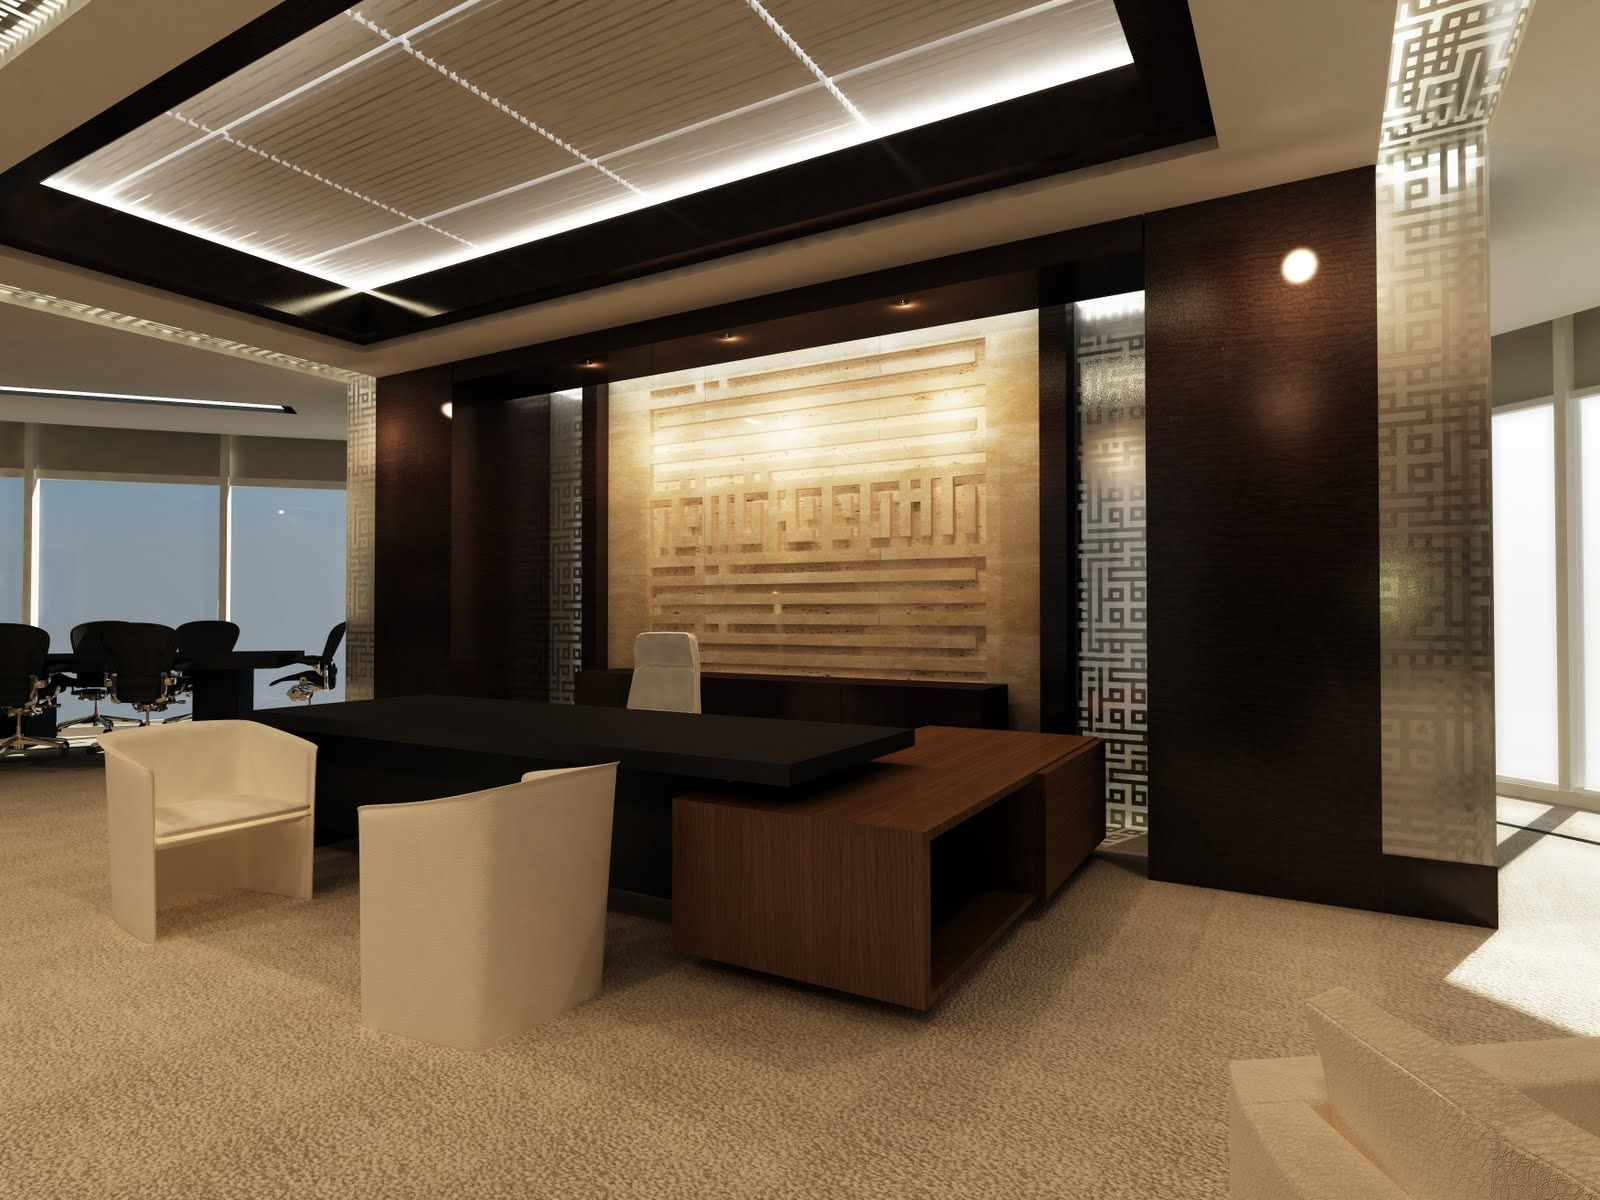 Office interior design intended for office interior design for It office design ideas